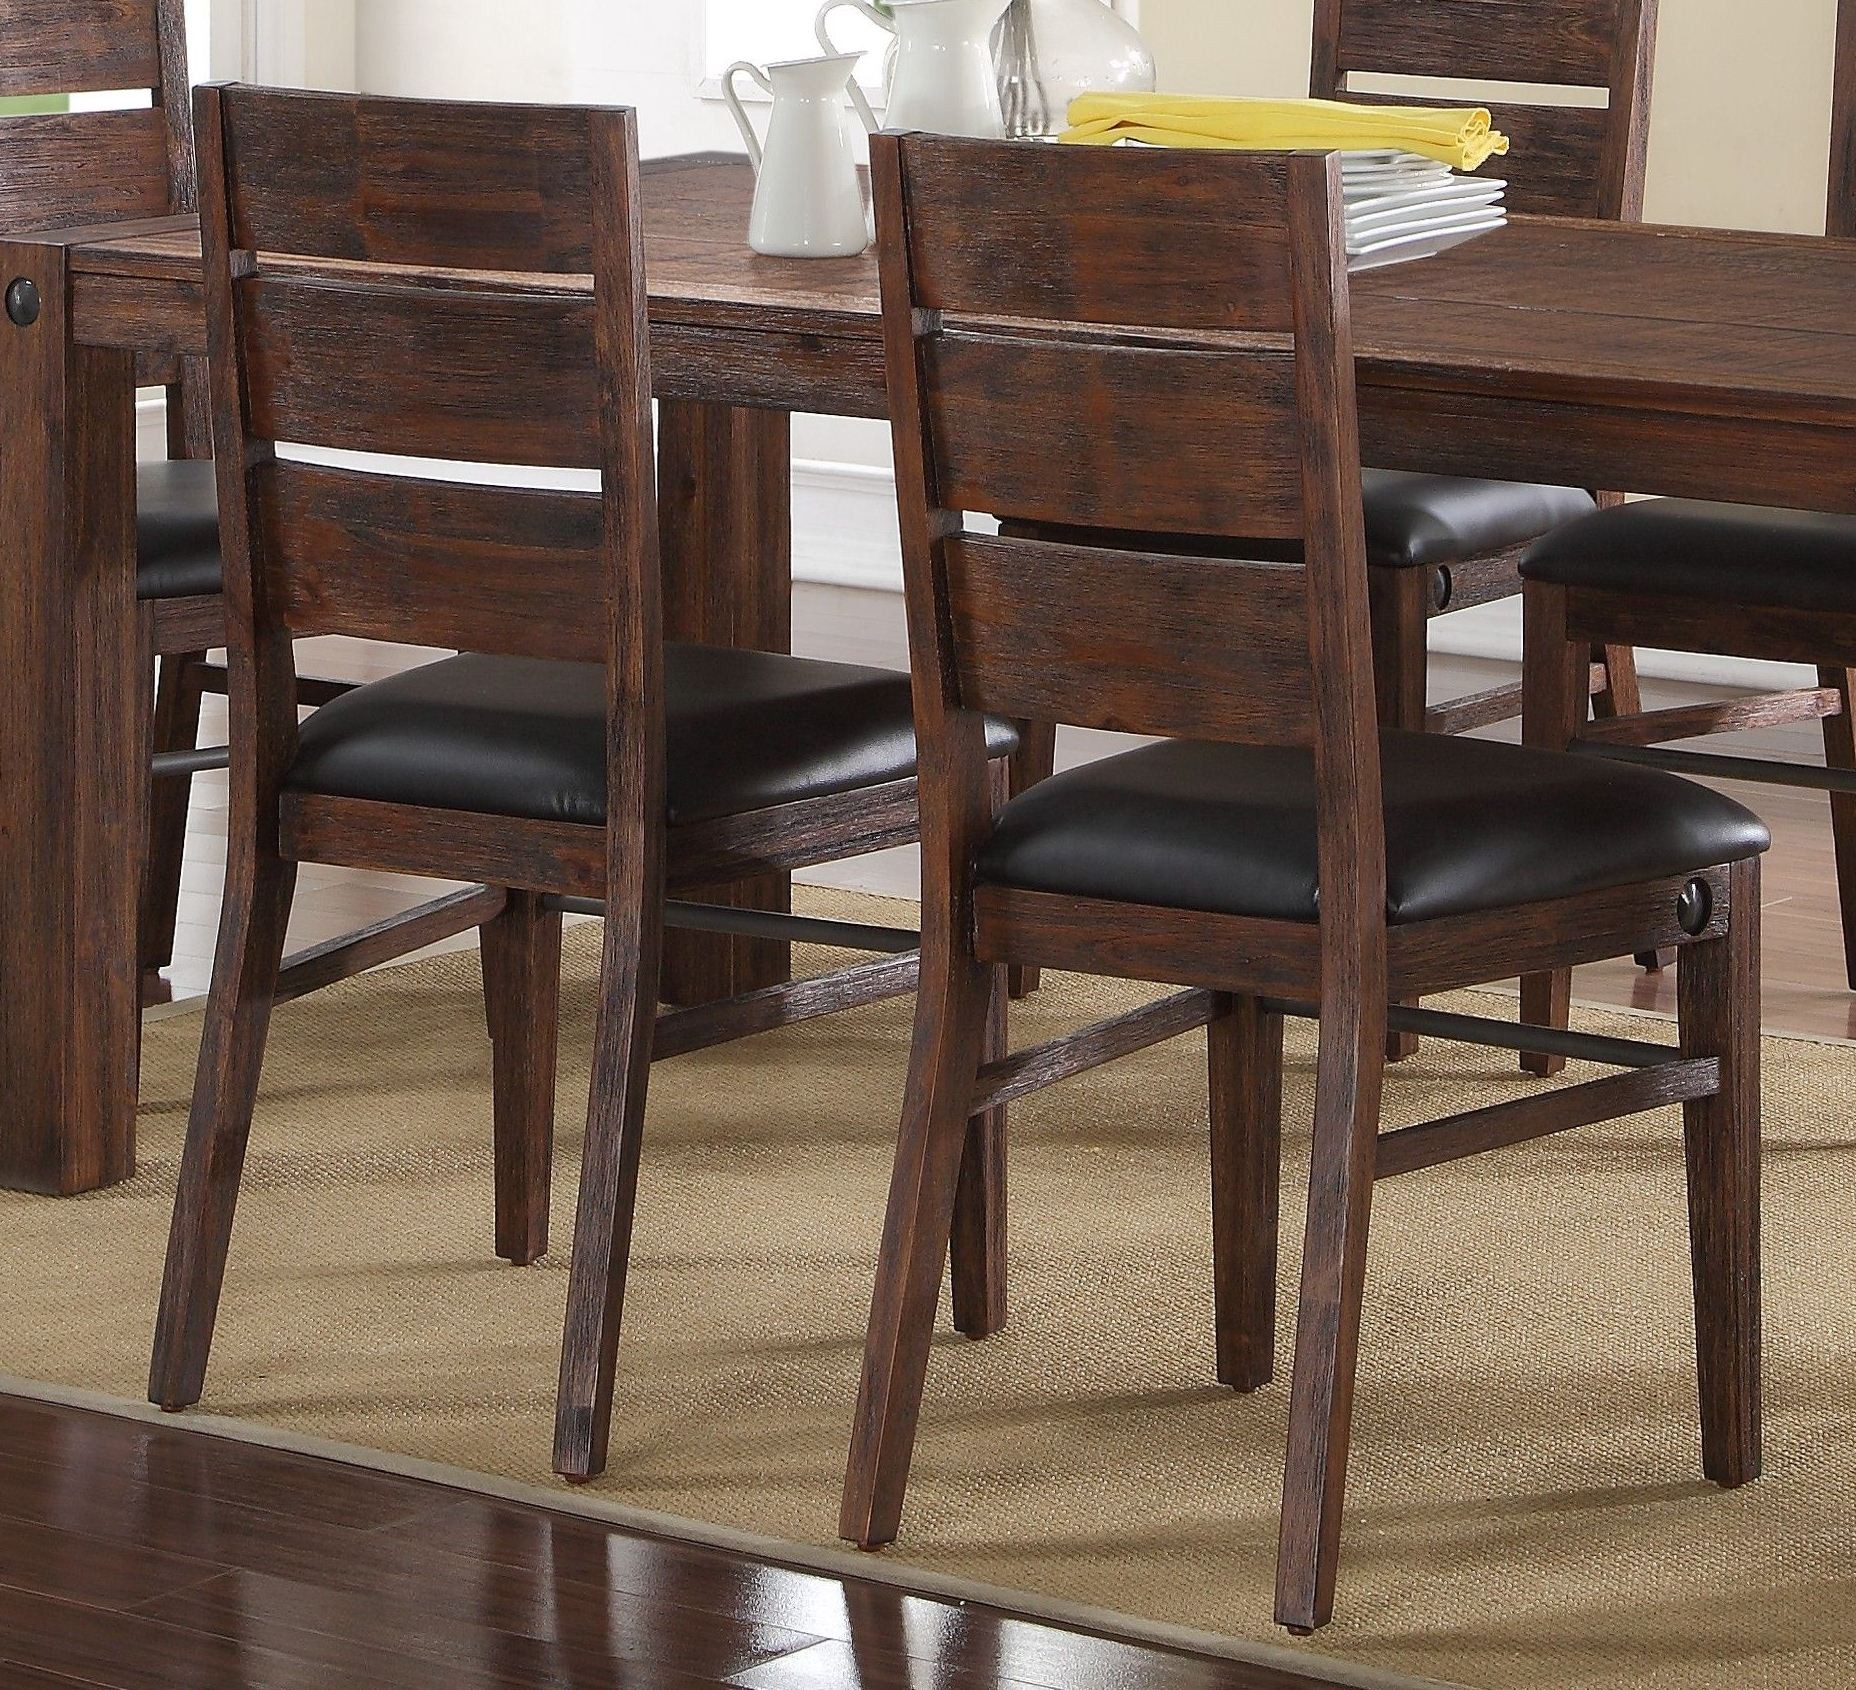 Fairway Royal Classics Distressed Walnut Dining Chair Set